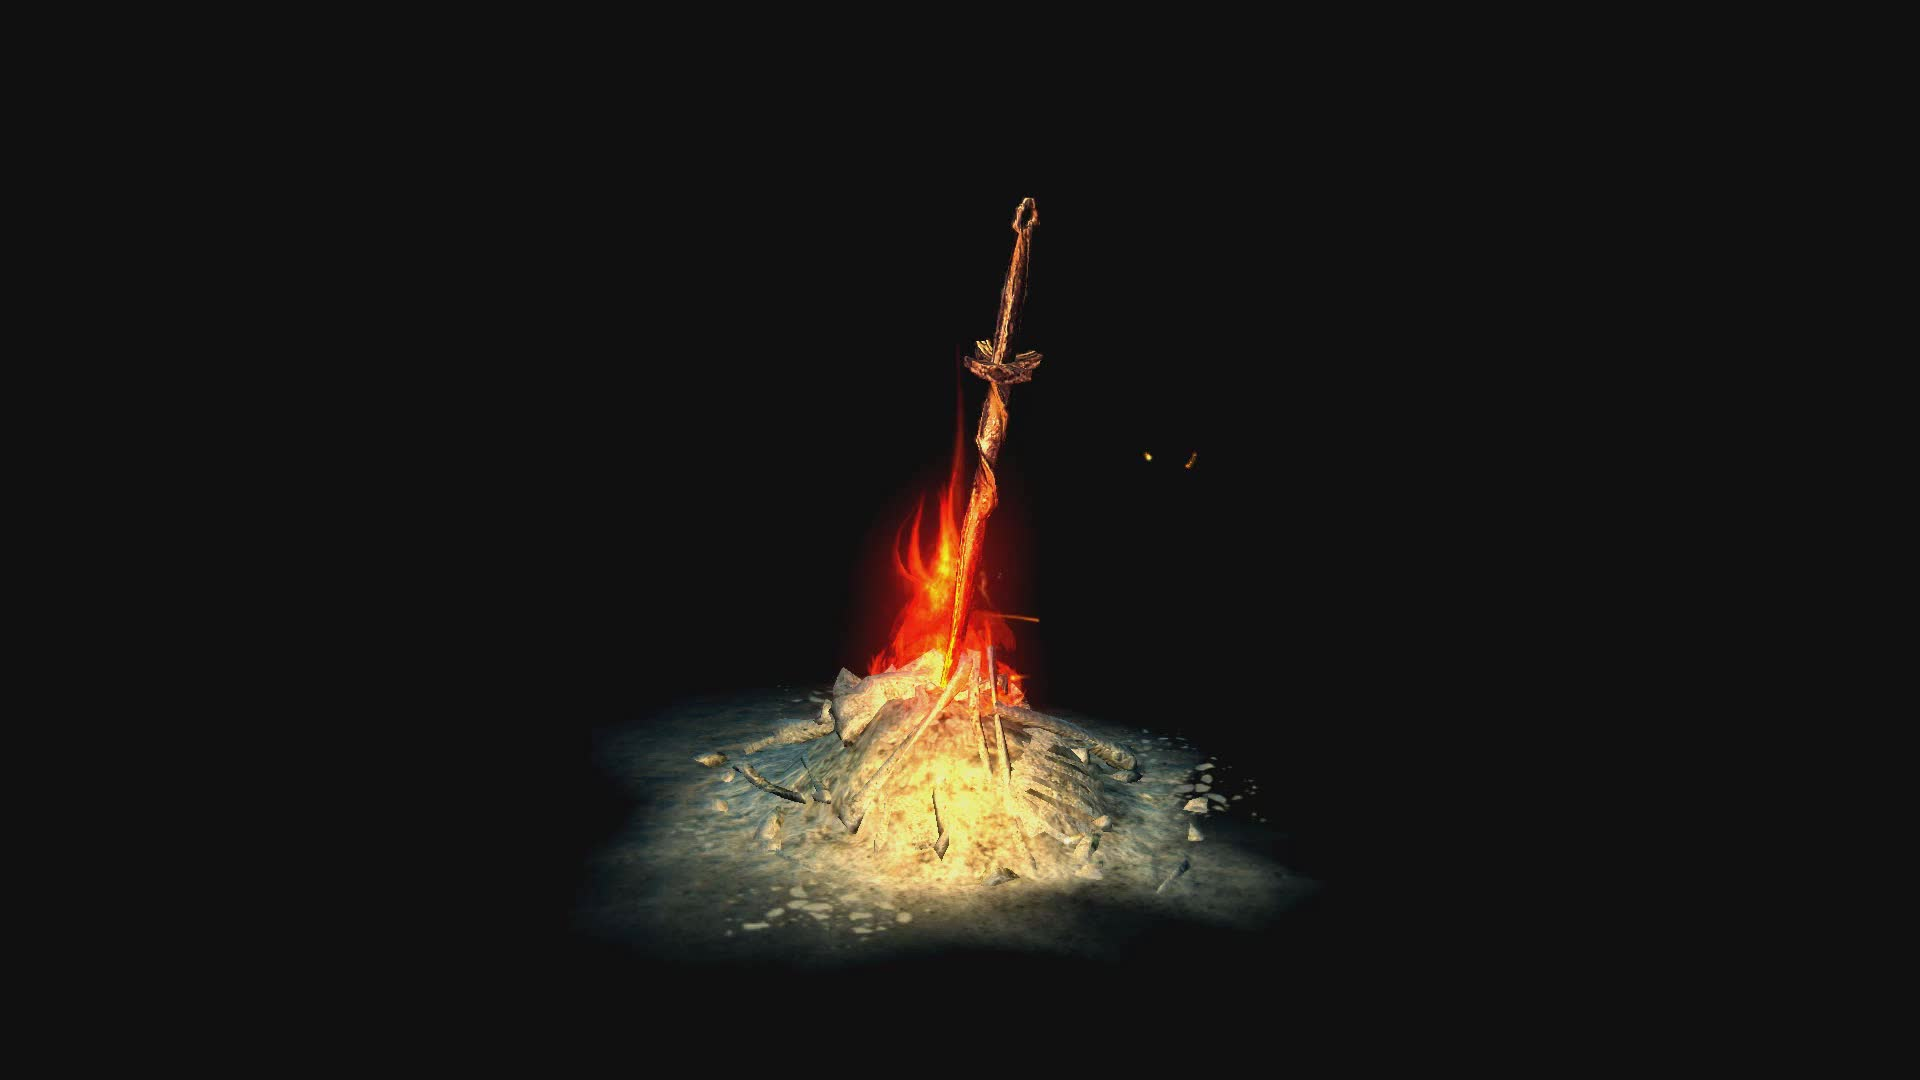 Hd Dreamscene Bonfire Loop Unkindled Gif Gfycat